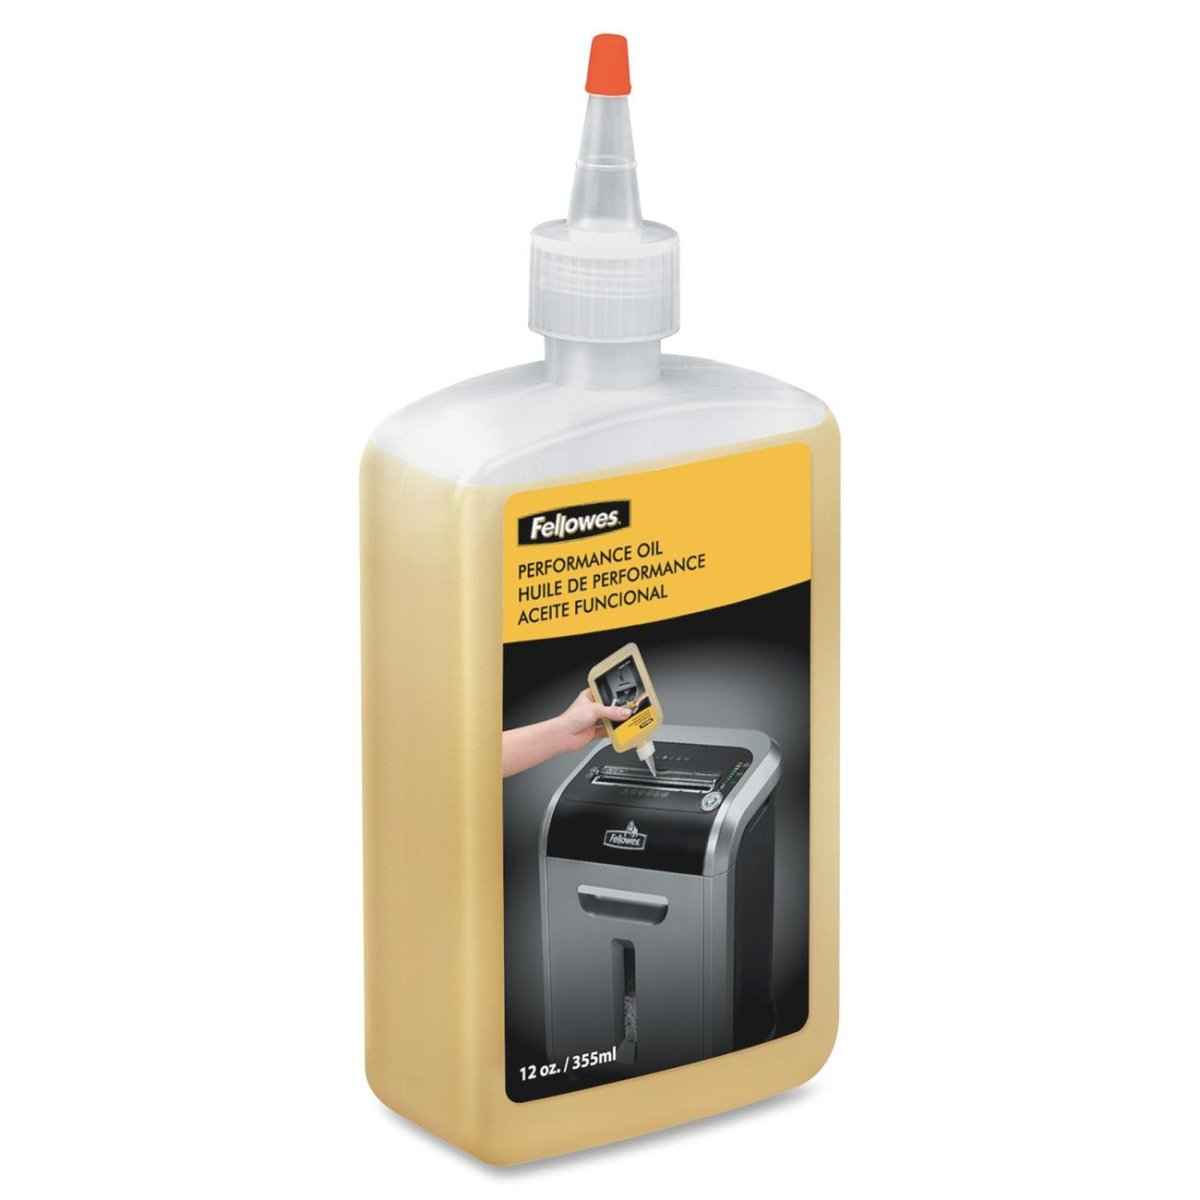 FELLOWES 35250 Powershred(R) Shredder Oil Home & Garden Improvement